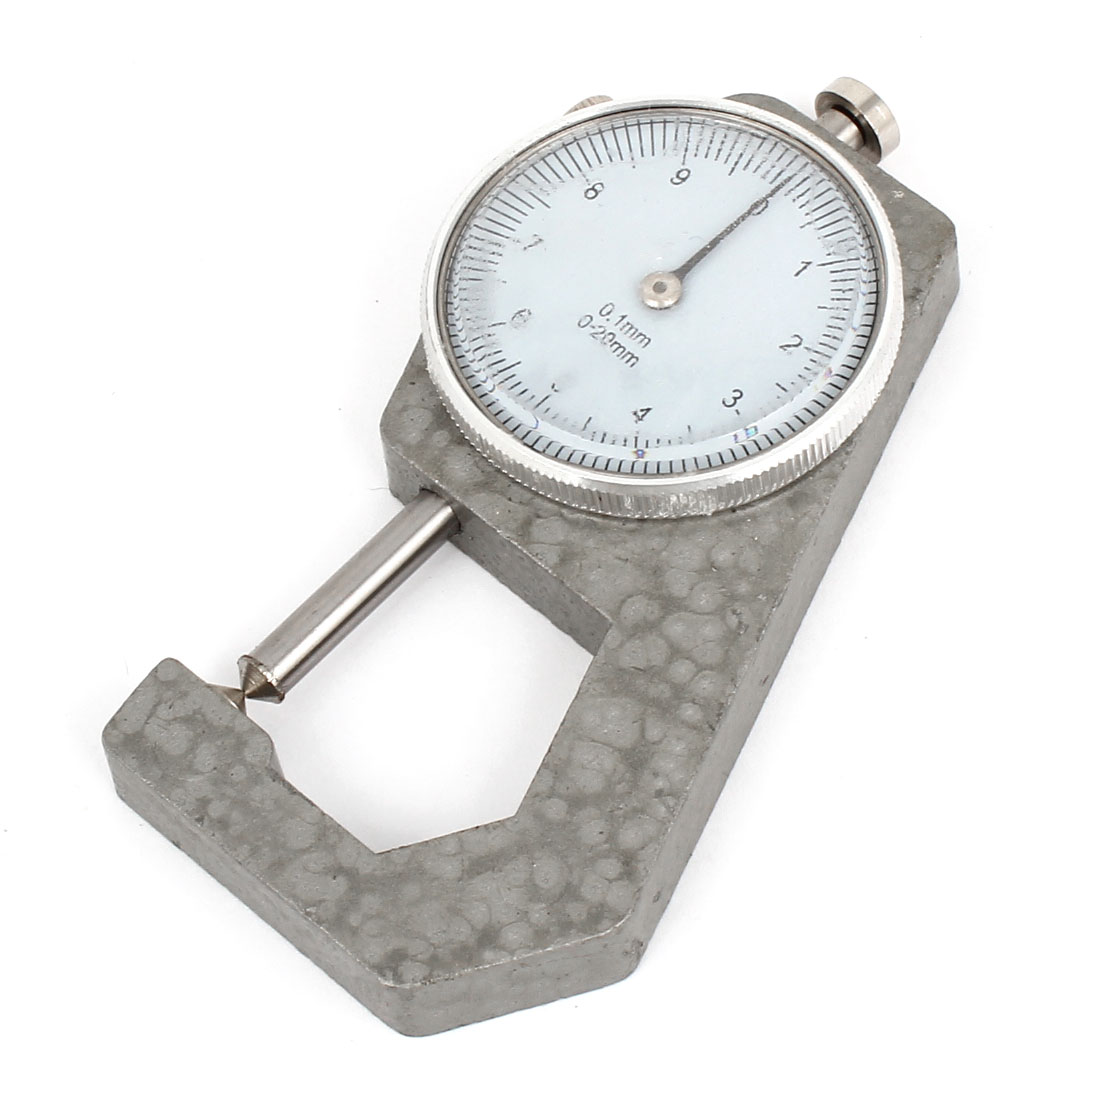 0 to 20mm Dial Indicator Handy Thickness Gage Gauge